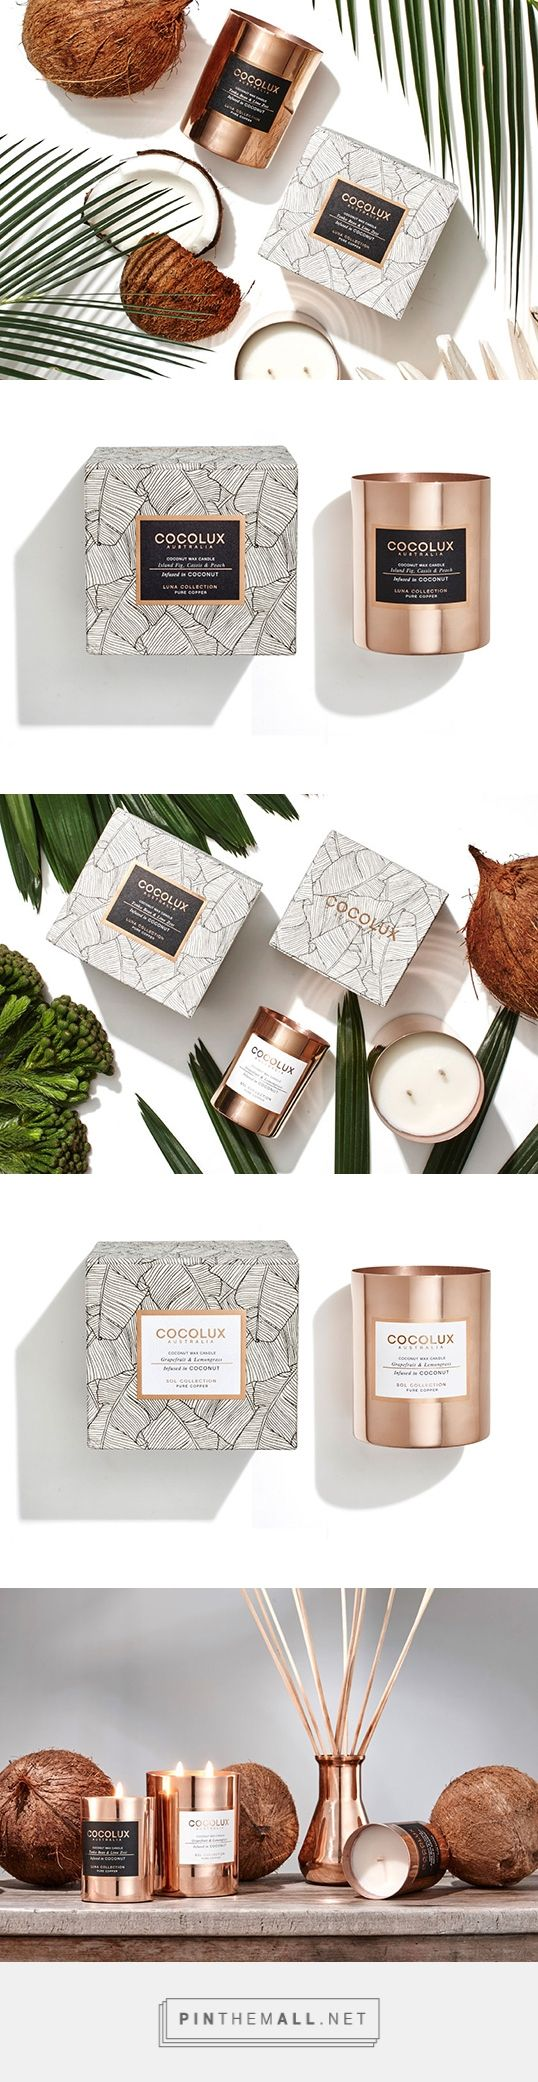 Cocolux | Where design and luxury meet mother nature